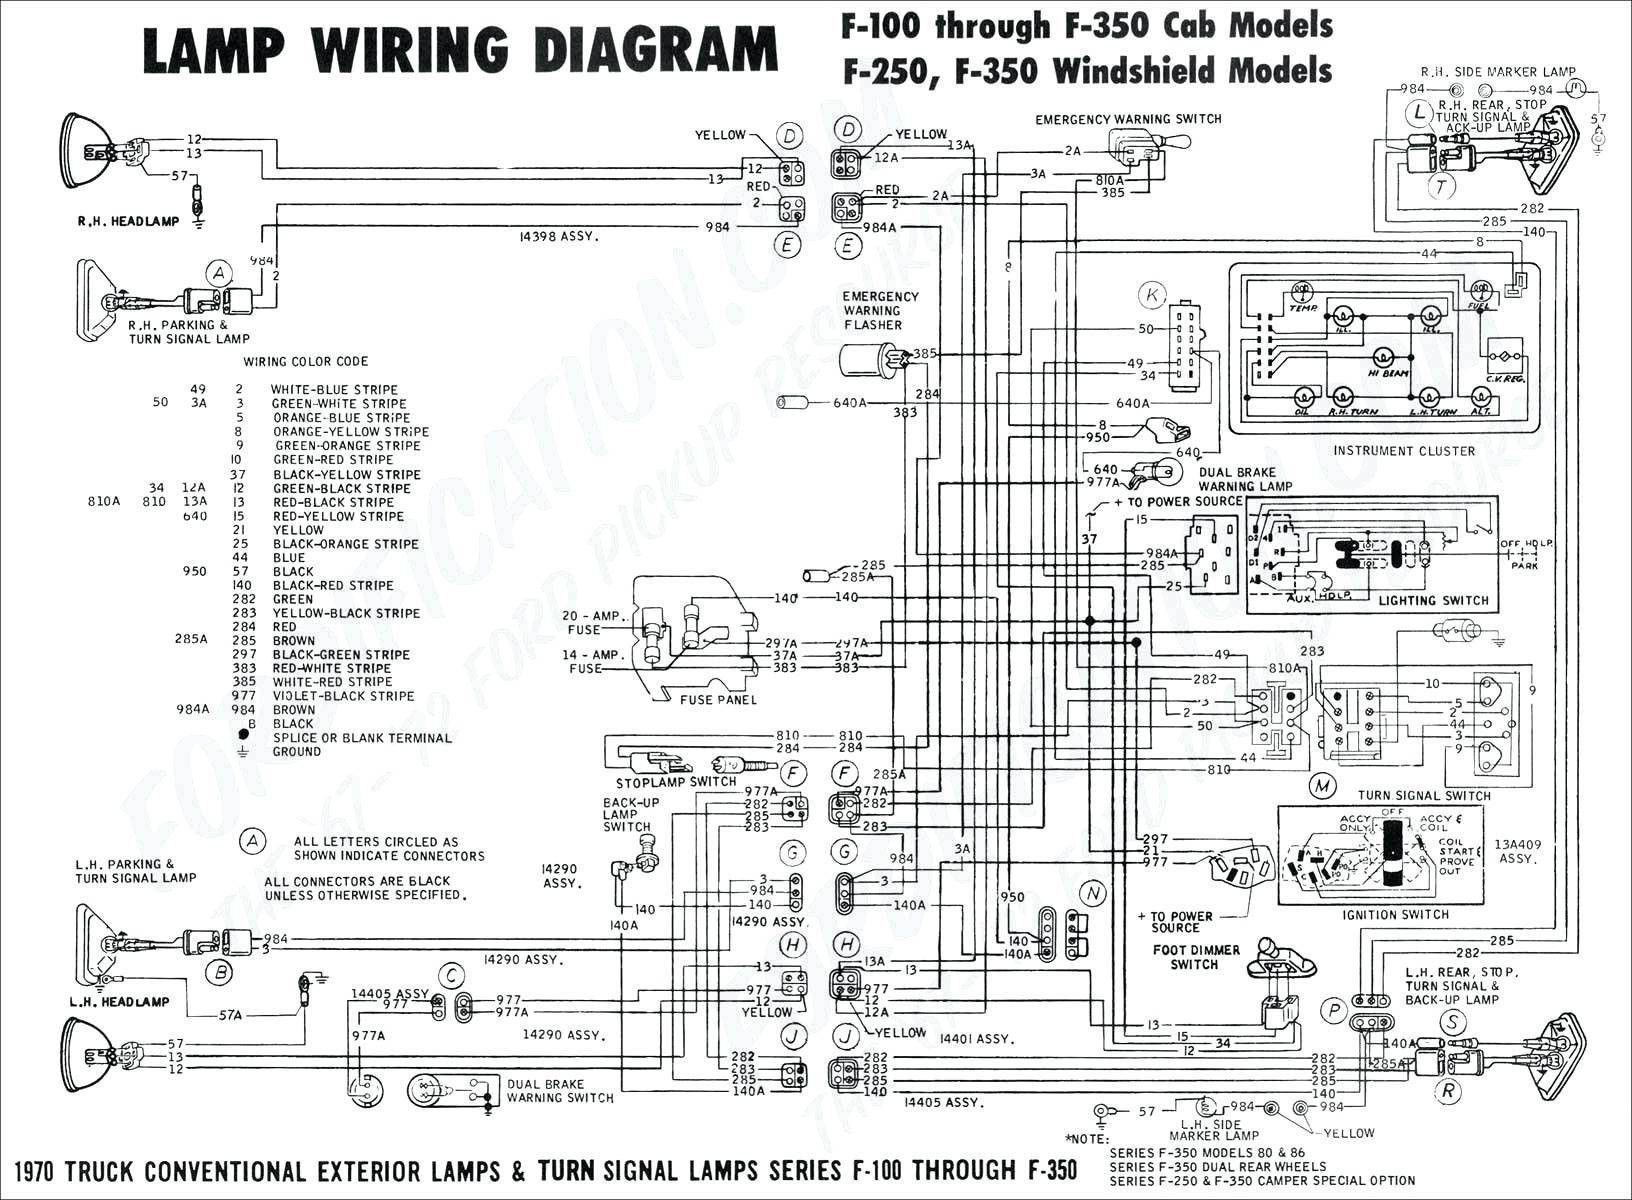 Unique Wiring Diagram for Auto Transformers #diagramsample